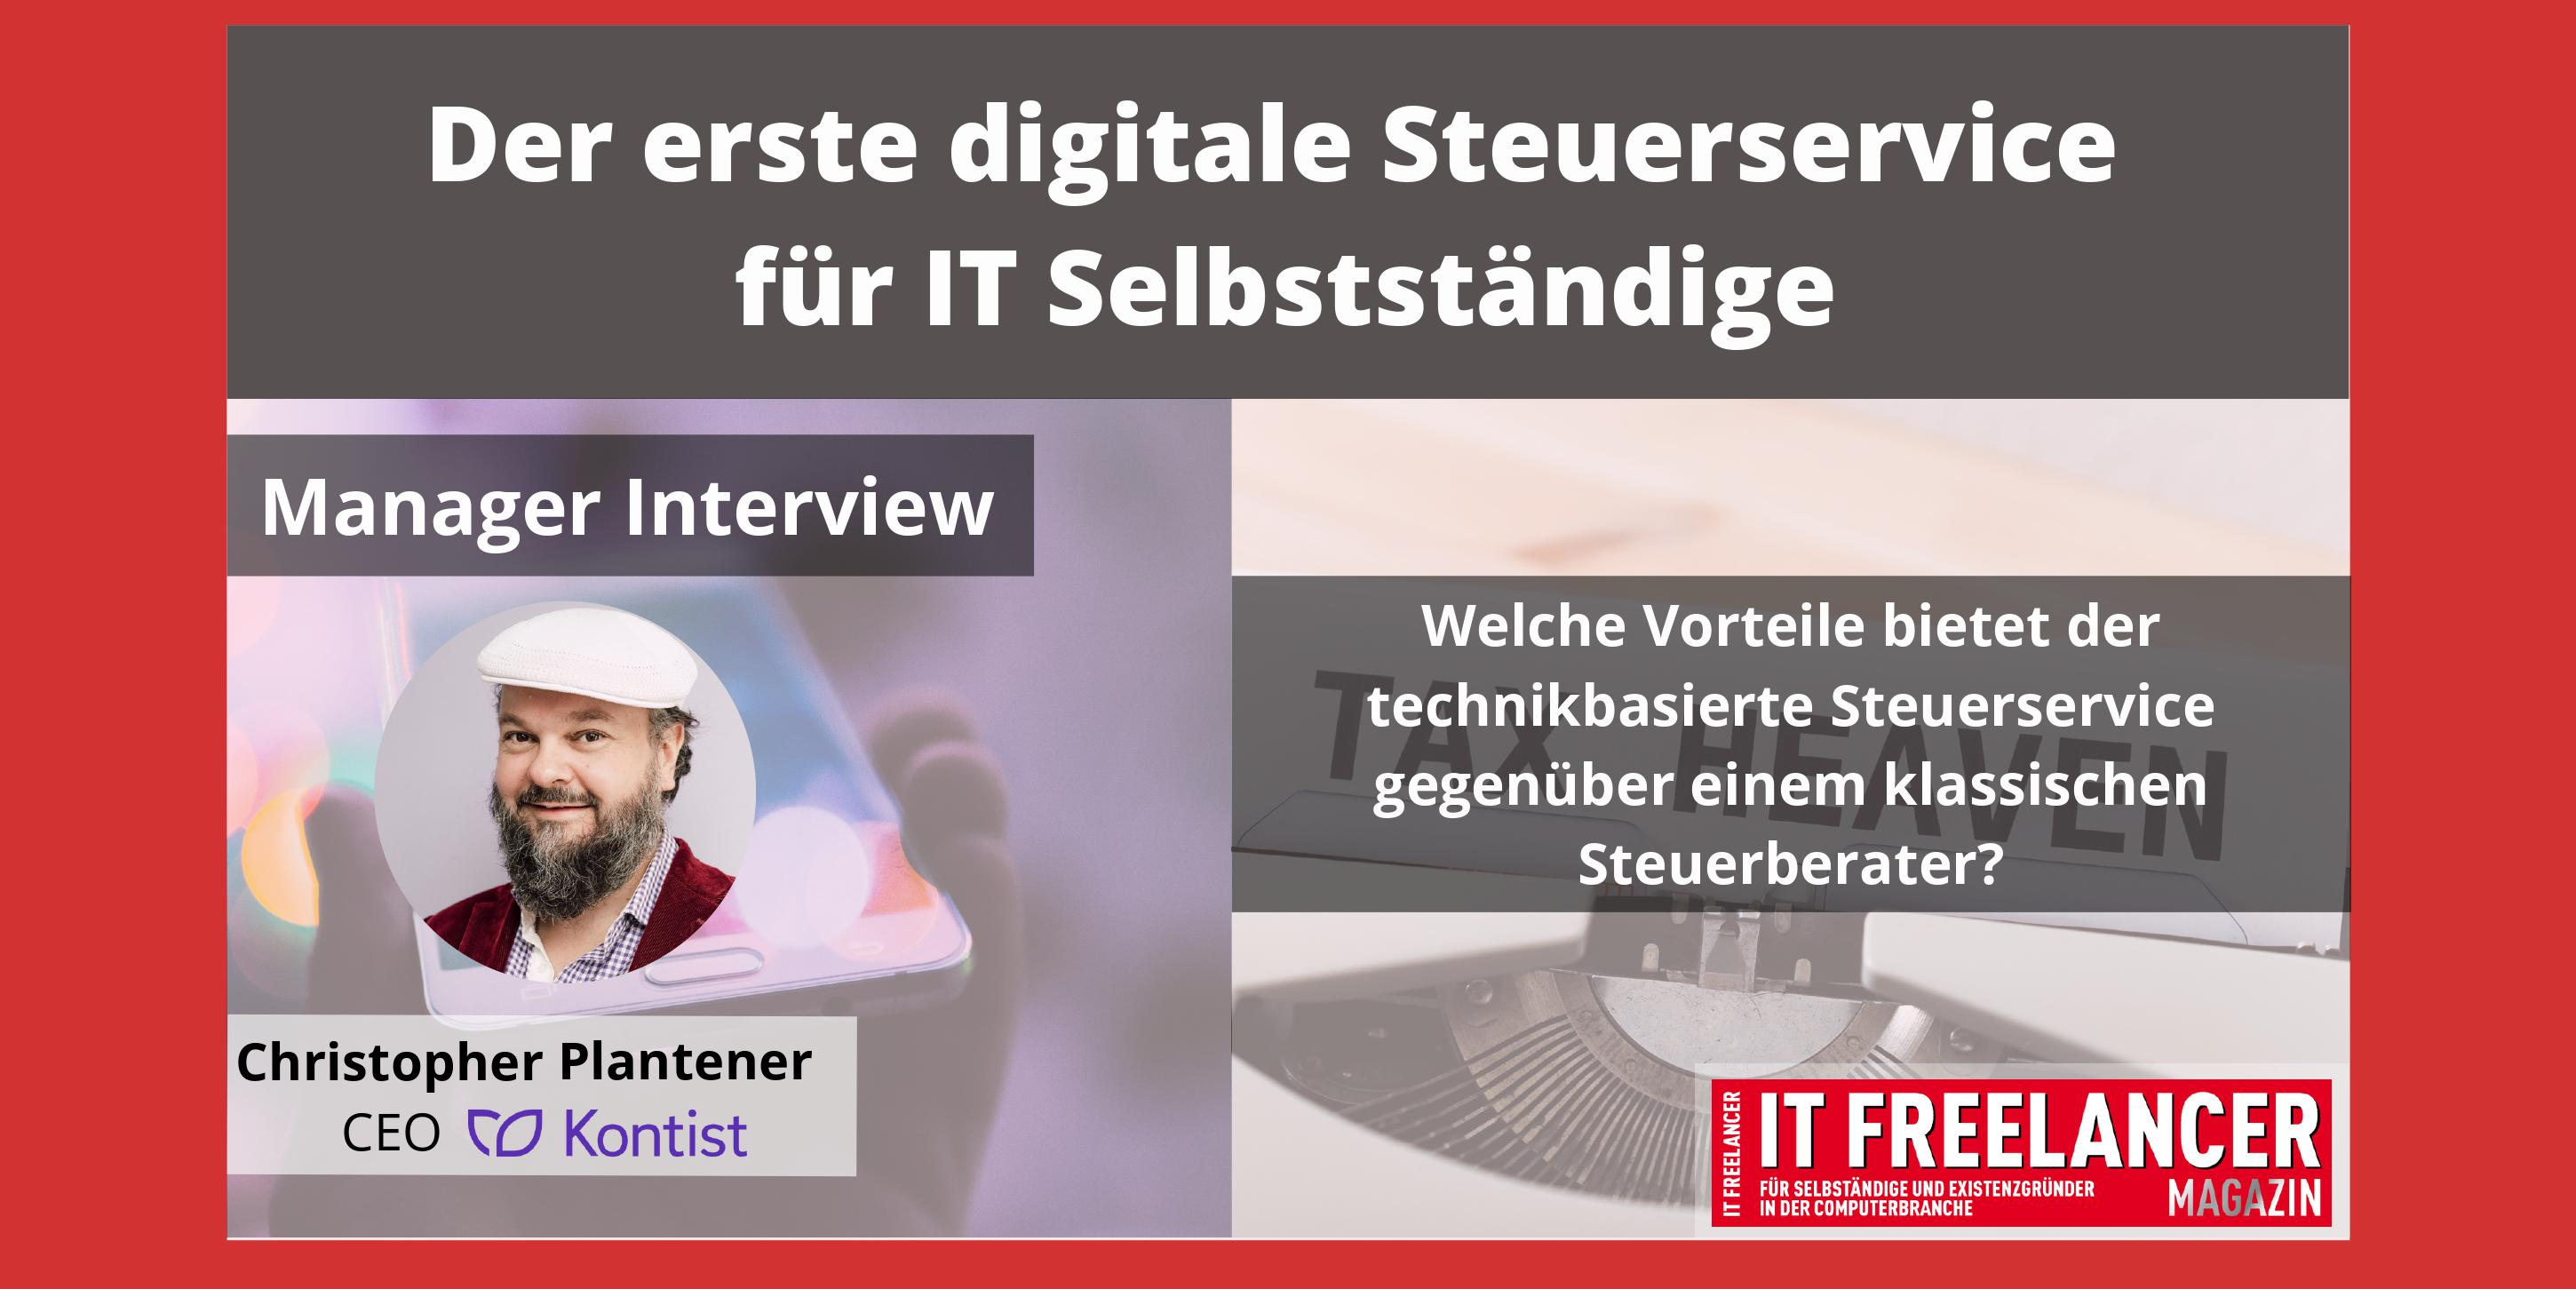 Manager Interview mit Christoper Plantener von Kontist